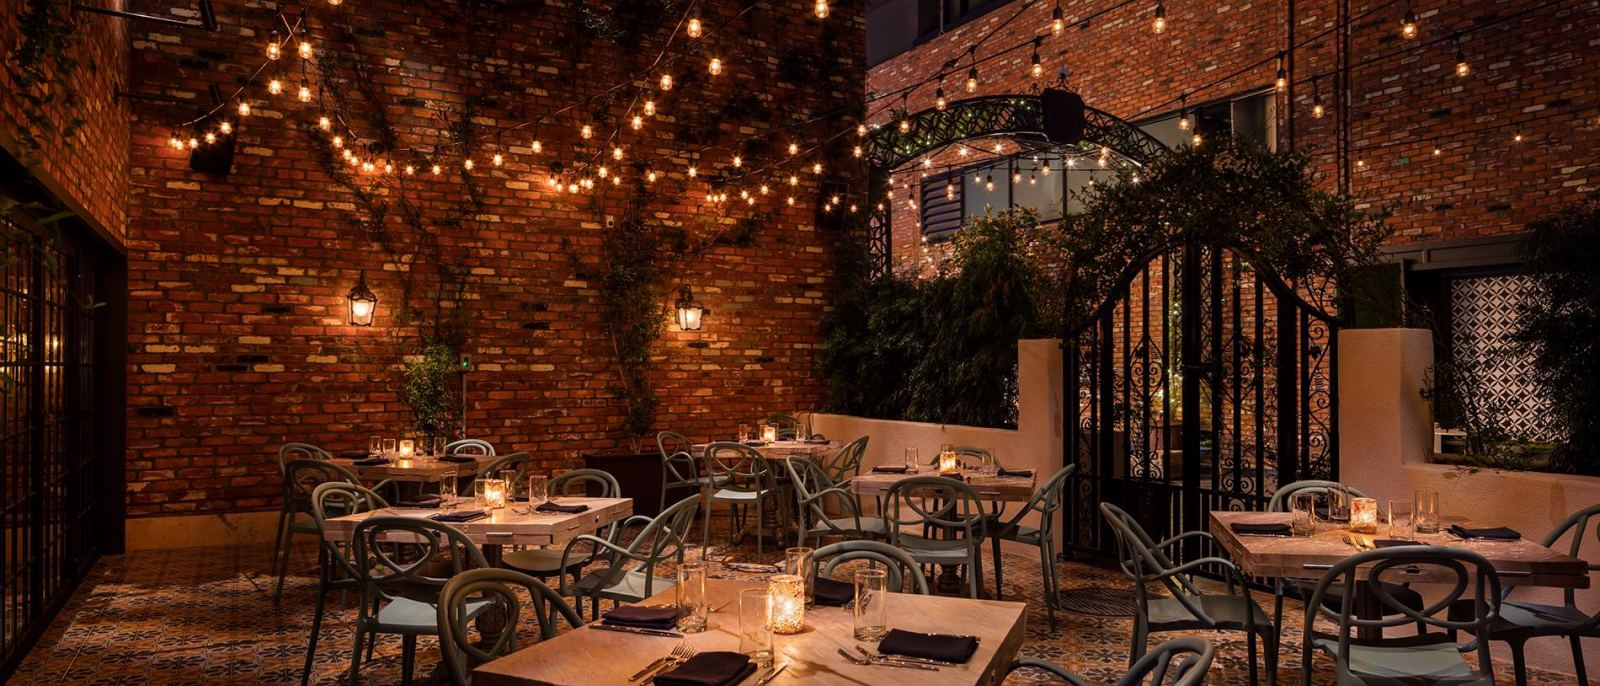 The Most Romantic Restaurants In Los Angeles Discover Los Angeles